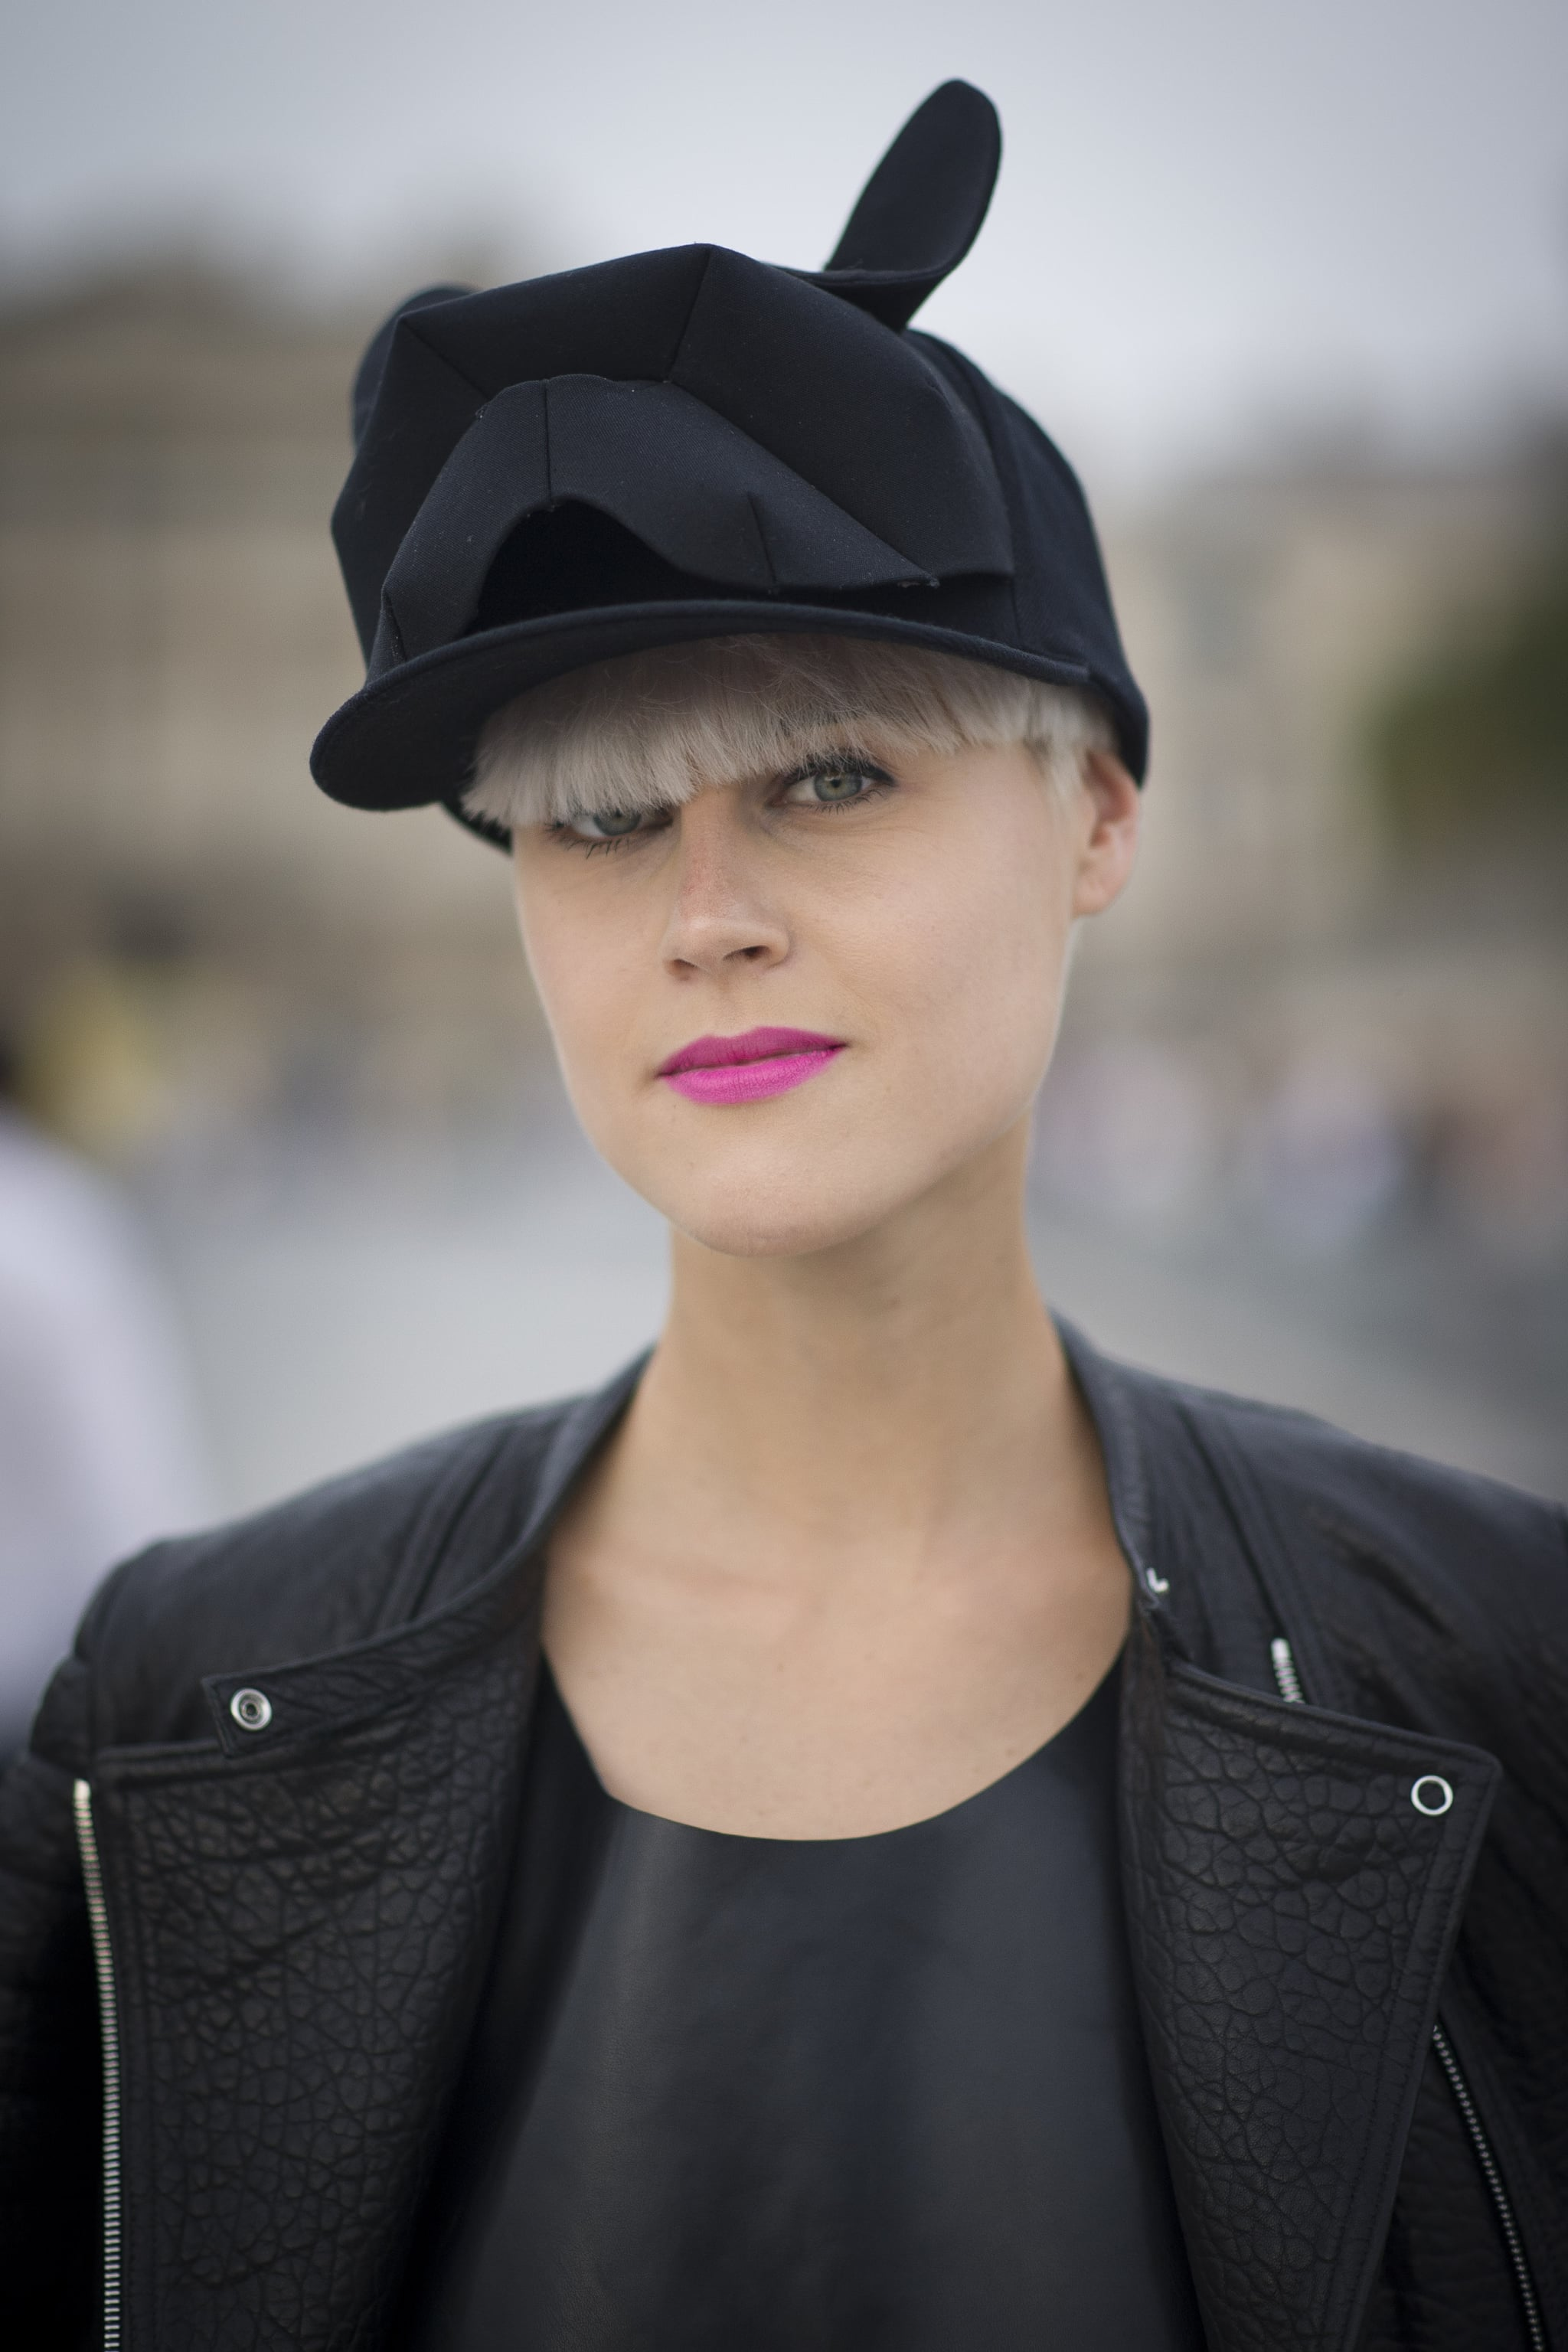 Bangs and a pixie look super edgy when paired with an oversized cap.